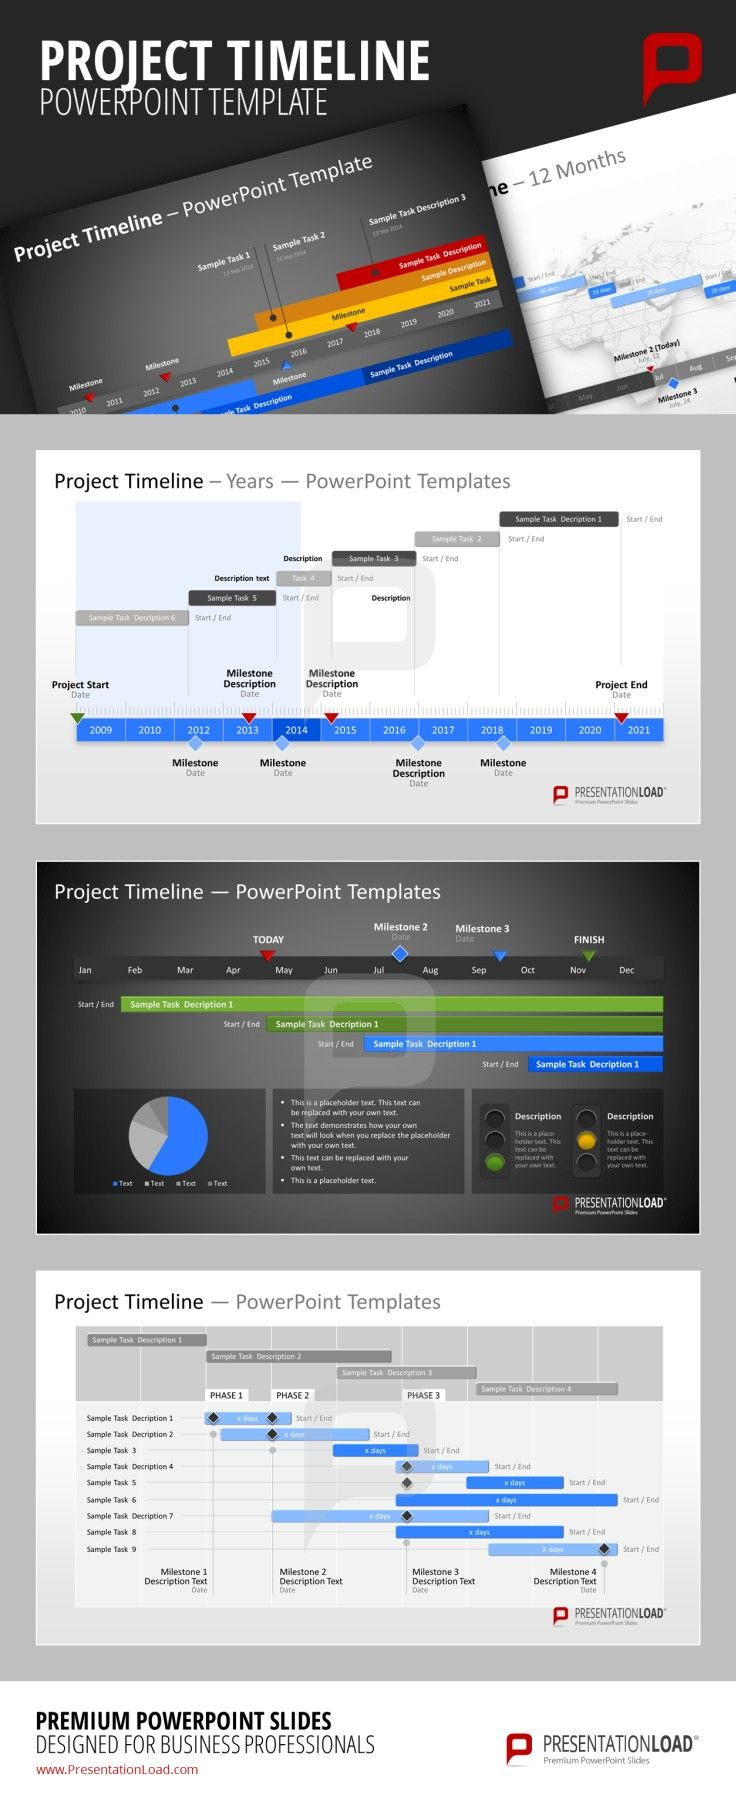 Project Timeline PPT Example Template Project Timeslines PowerPoint Template Use different styles for specific elements of your timeline to make it easier for your audience to distinguish between them. #presentationload http://www.presentationload.com/project-timelines.html